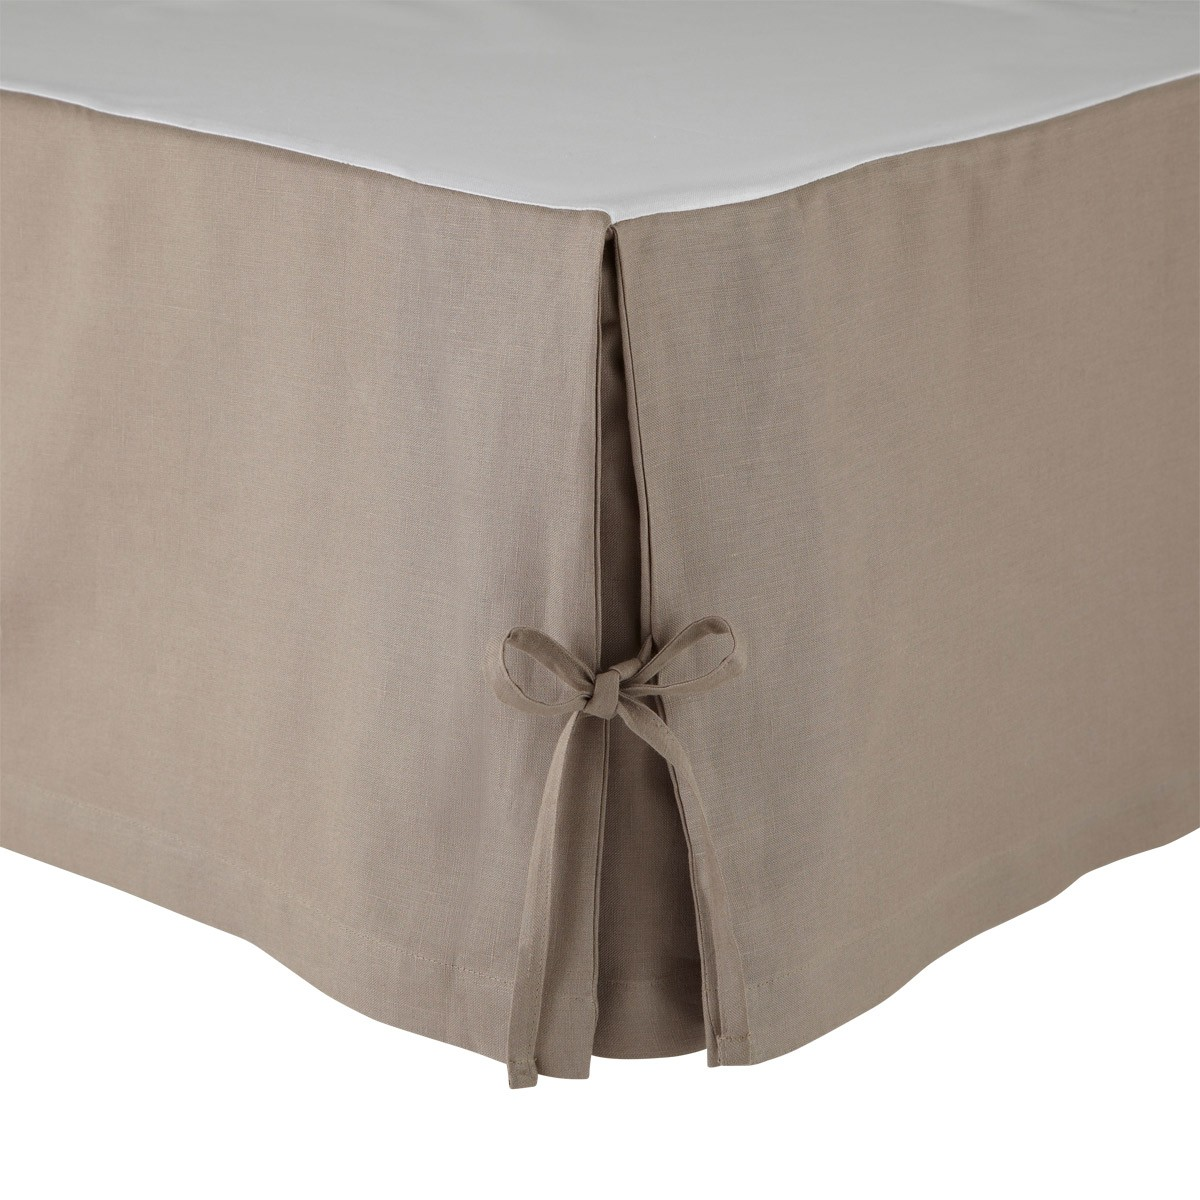 Cache sommier Lin Taupe 200 x 200 cm